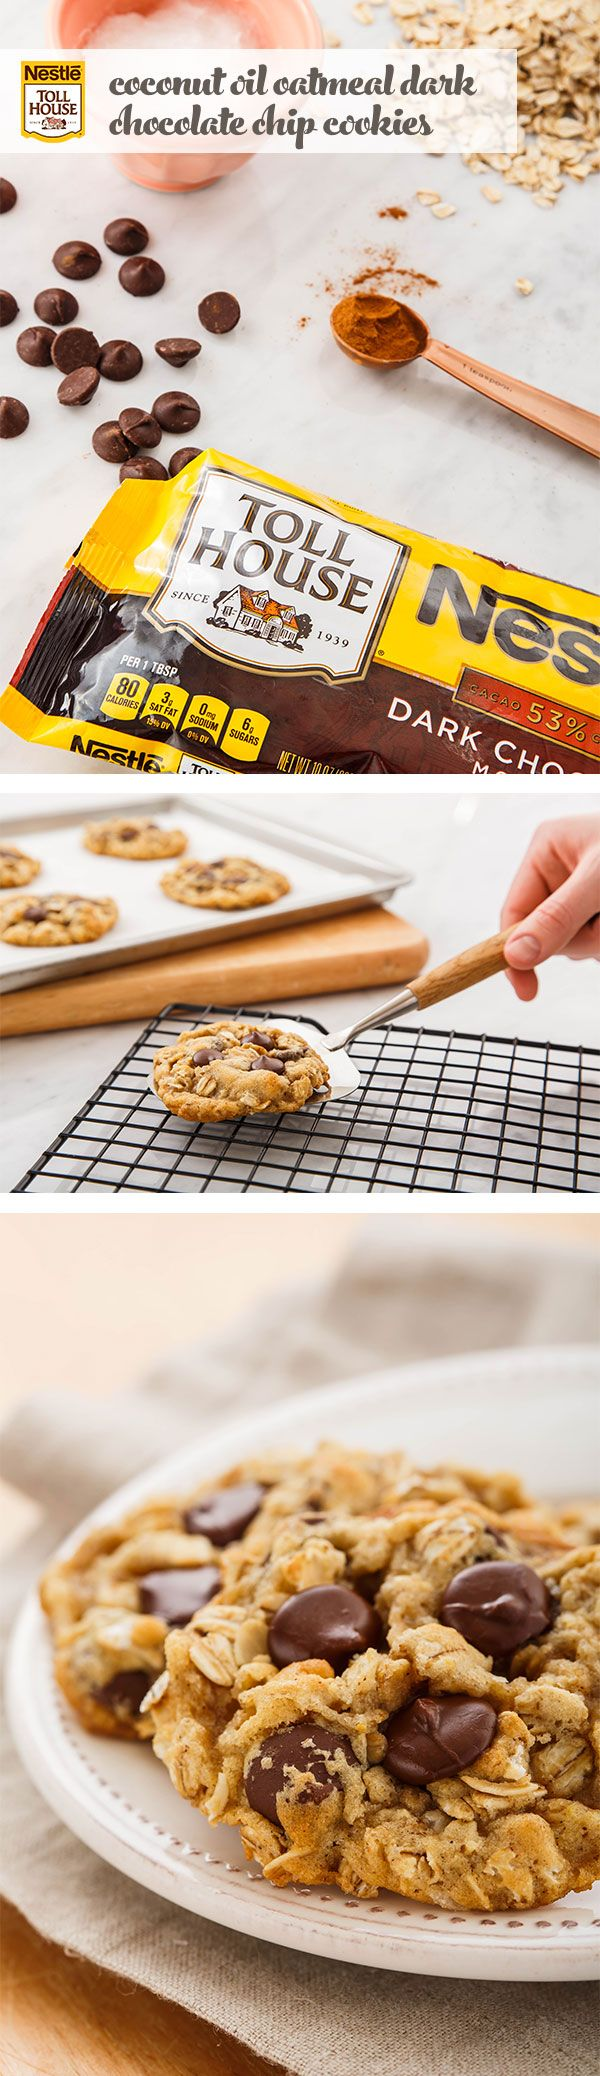 """They're easy, delicious and full of simple, good stuff like old-fashioned oats, coconut oil, cinnamon and whole wheat flour. Whether you're baking for your work BFF or the whole department, our Coconut Oil Dark Chocolate Chip Cookies are sure to inspire a whole lot of """"yums!"""" Combine ingredients, stirring in oats and Nestlé® Toll House® Dark Chocolate Morsels, then scoop dough onto a baking tray. Bring them in on a Monday—and your coworkers will be smiling all week."""